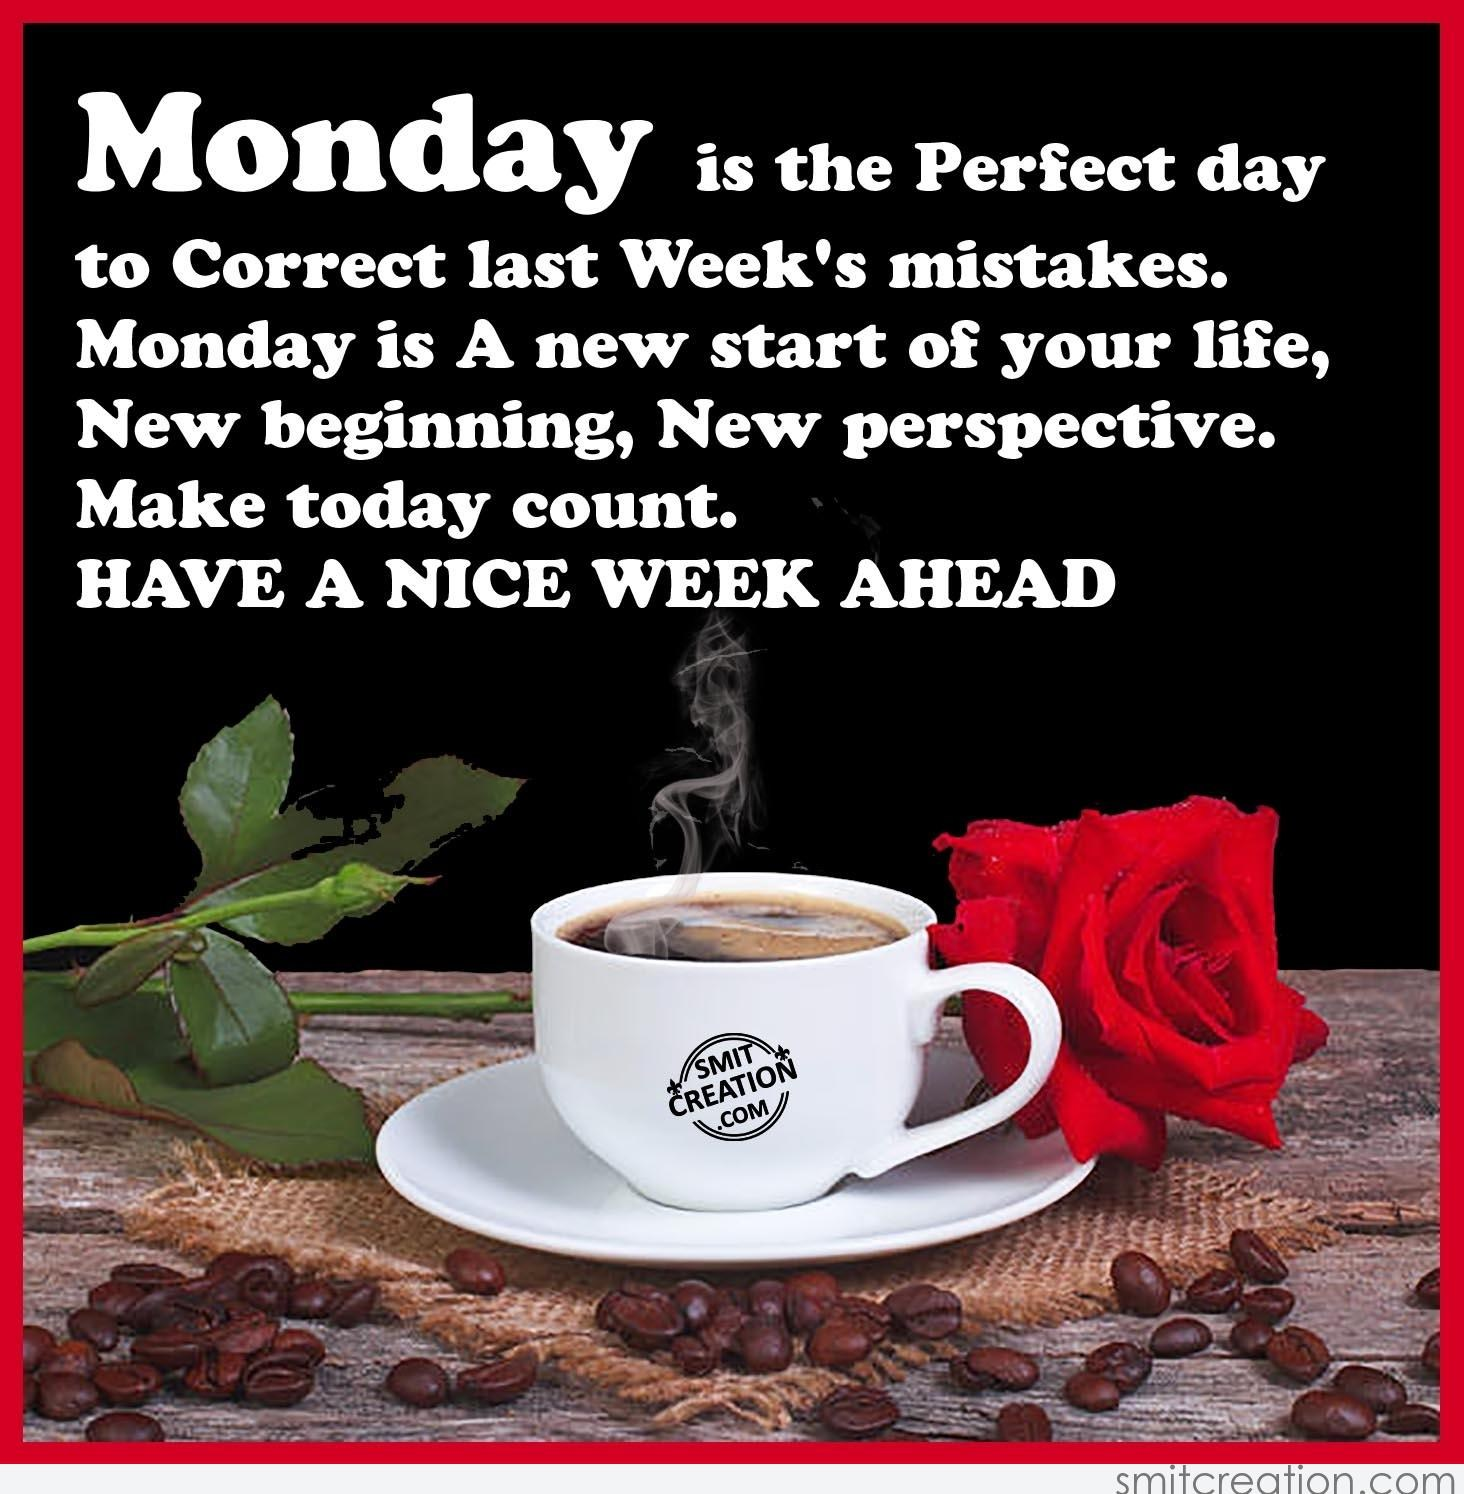 Monday greetings smitcreation monday is the perfect day to correct last weeks mistakes monday is a new start of your life new beginning new perspective make today count m4hsunfo Choice Image